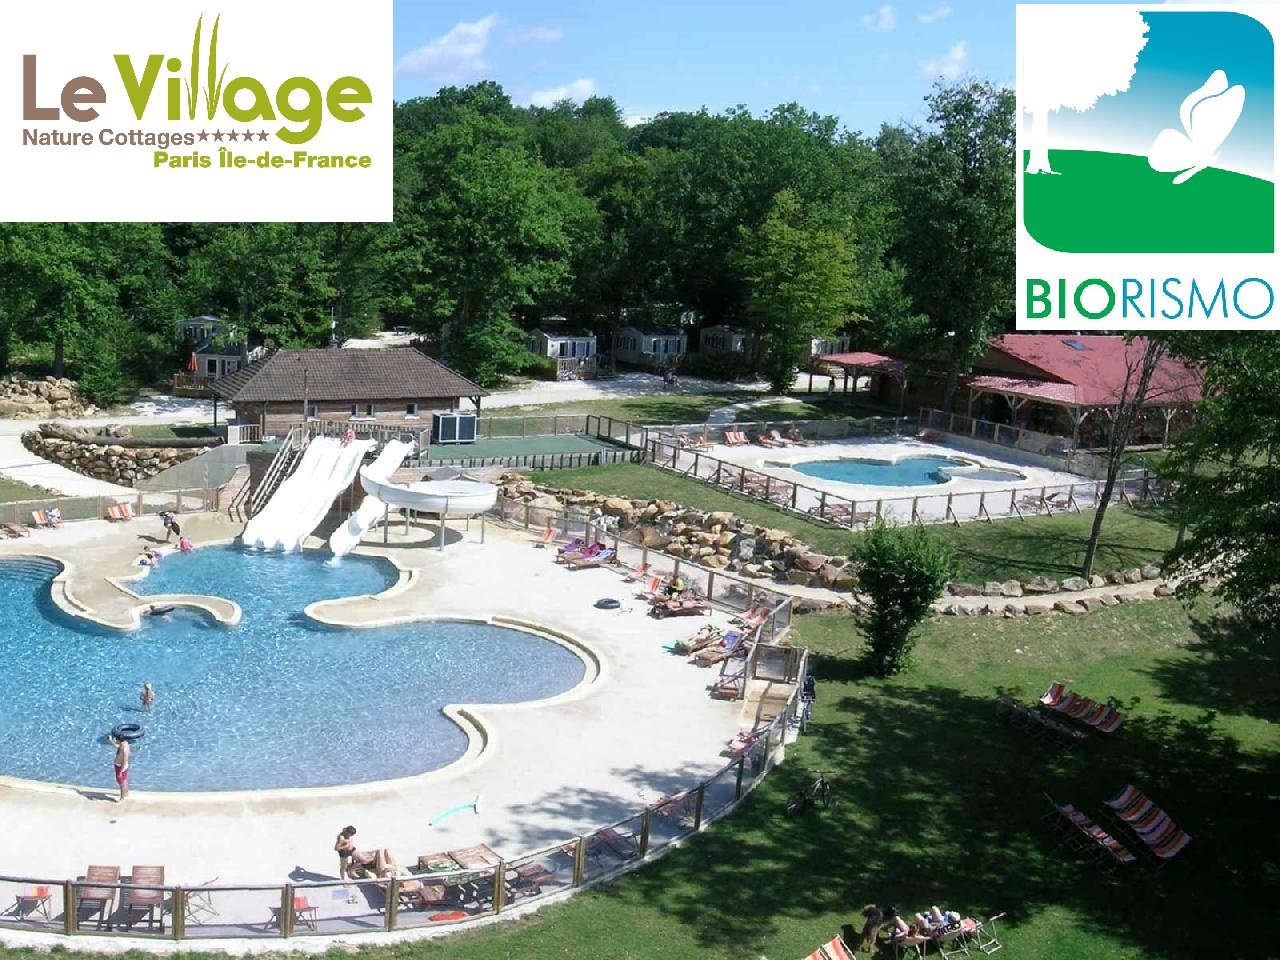 Le Village Nature Cottages*****